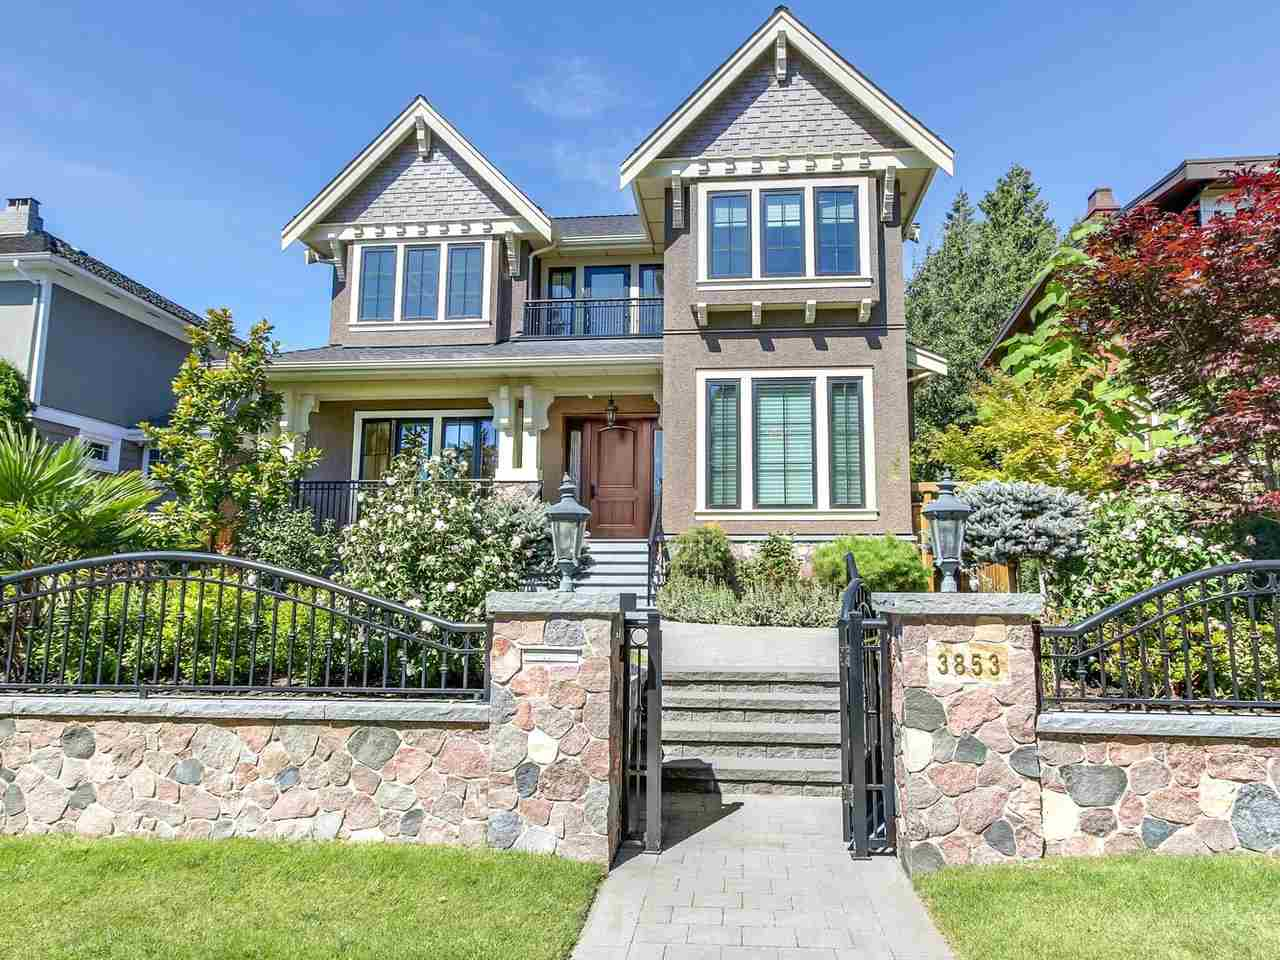 Detached at 3853 W 38TH AVENUE, Vancouver West, British Columbia. Image 1